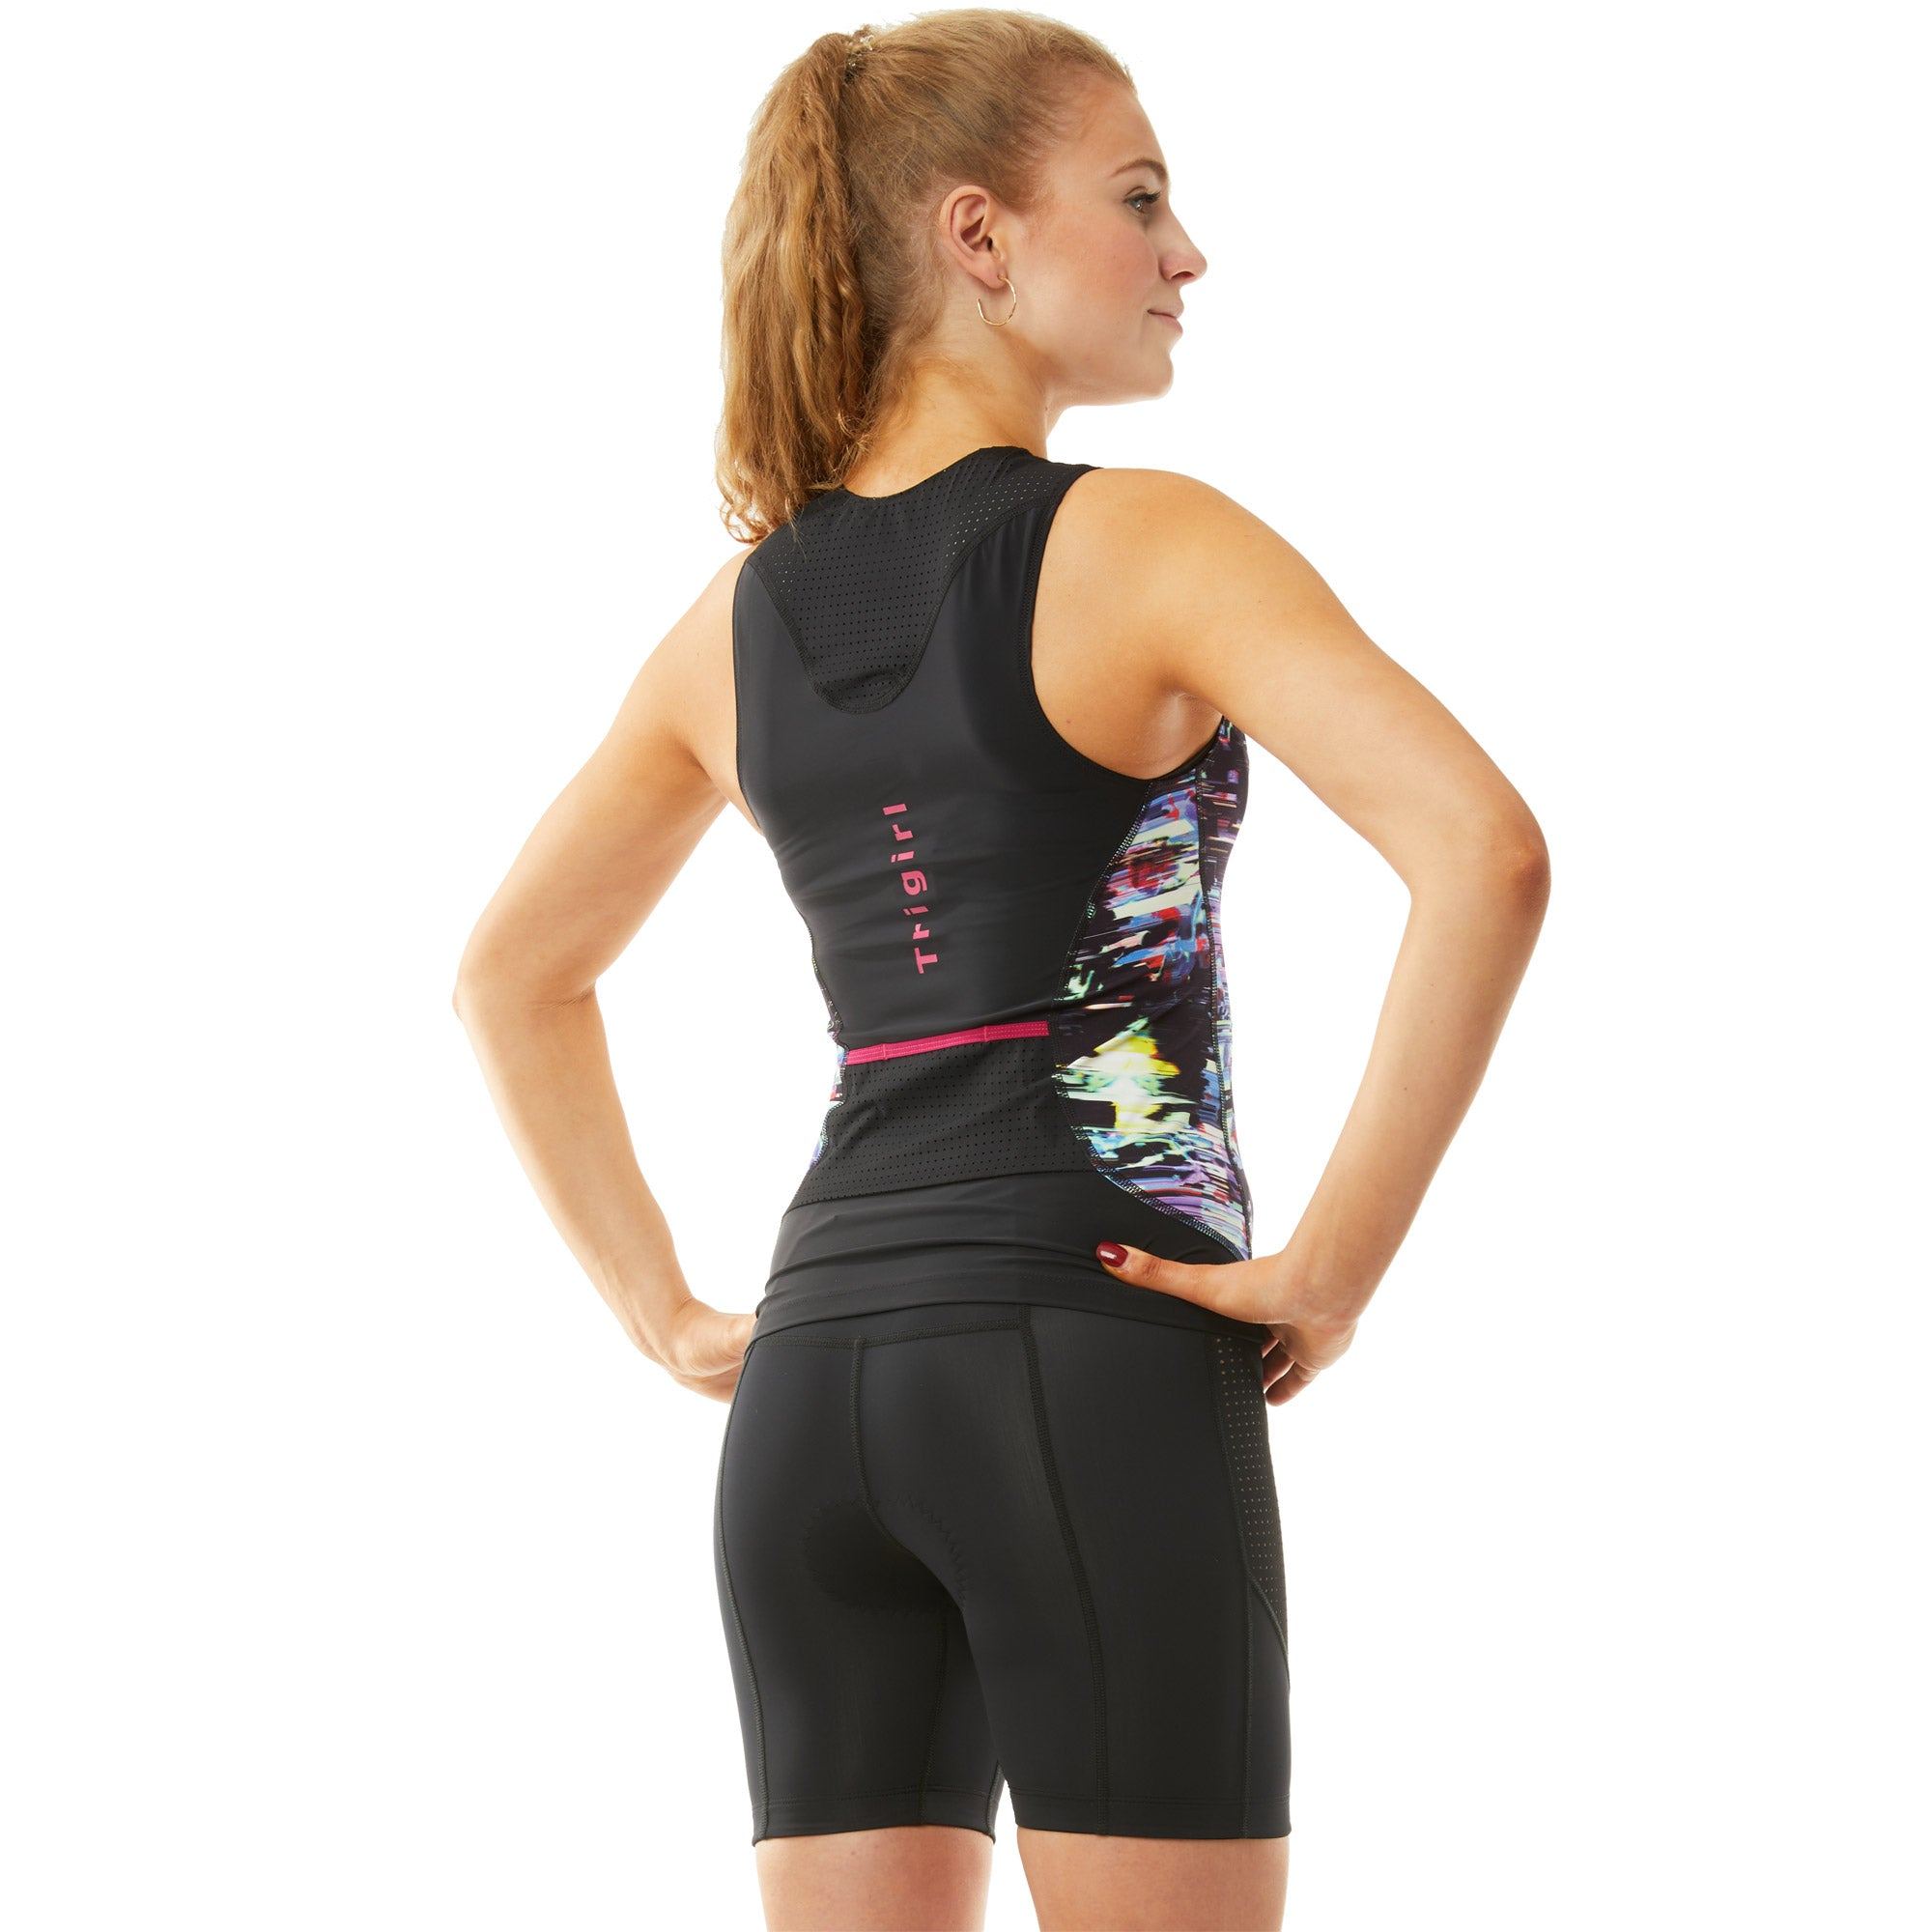 Sassy & Champion Triathlon Top and Shorts Set in Glitched Floral - M